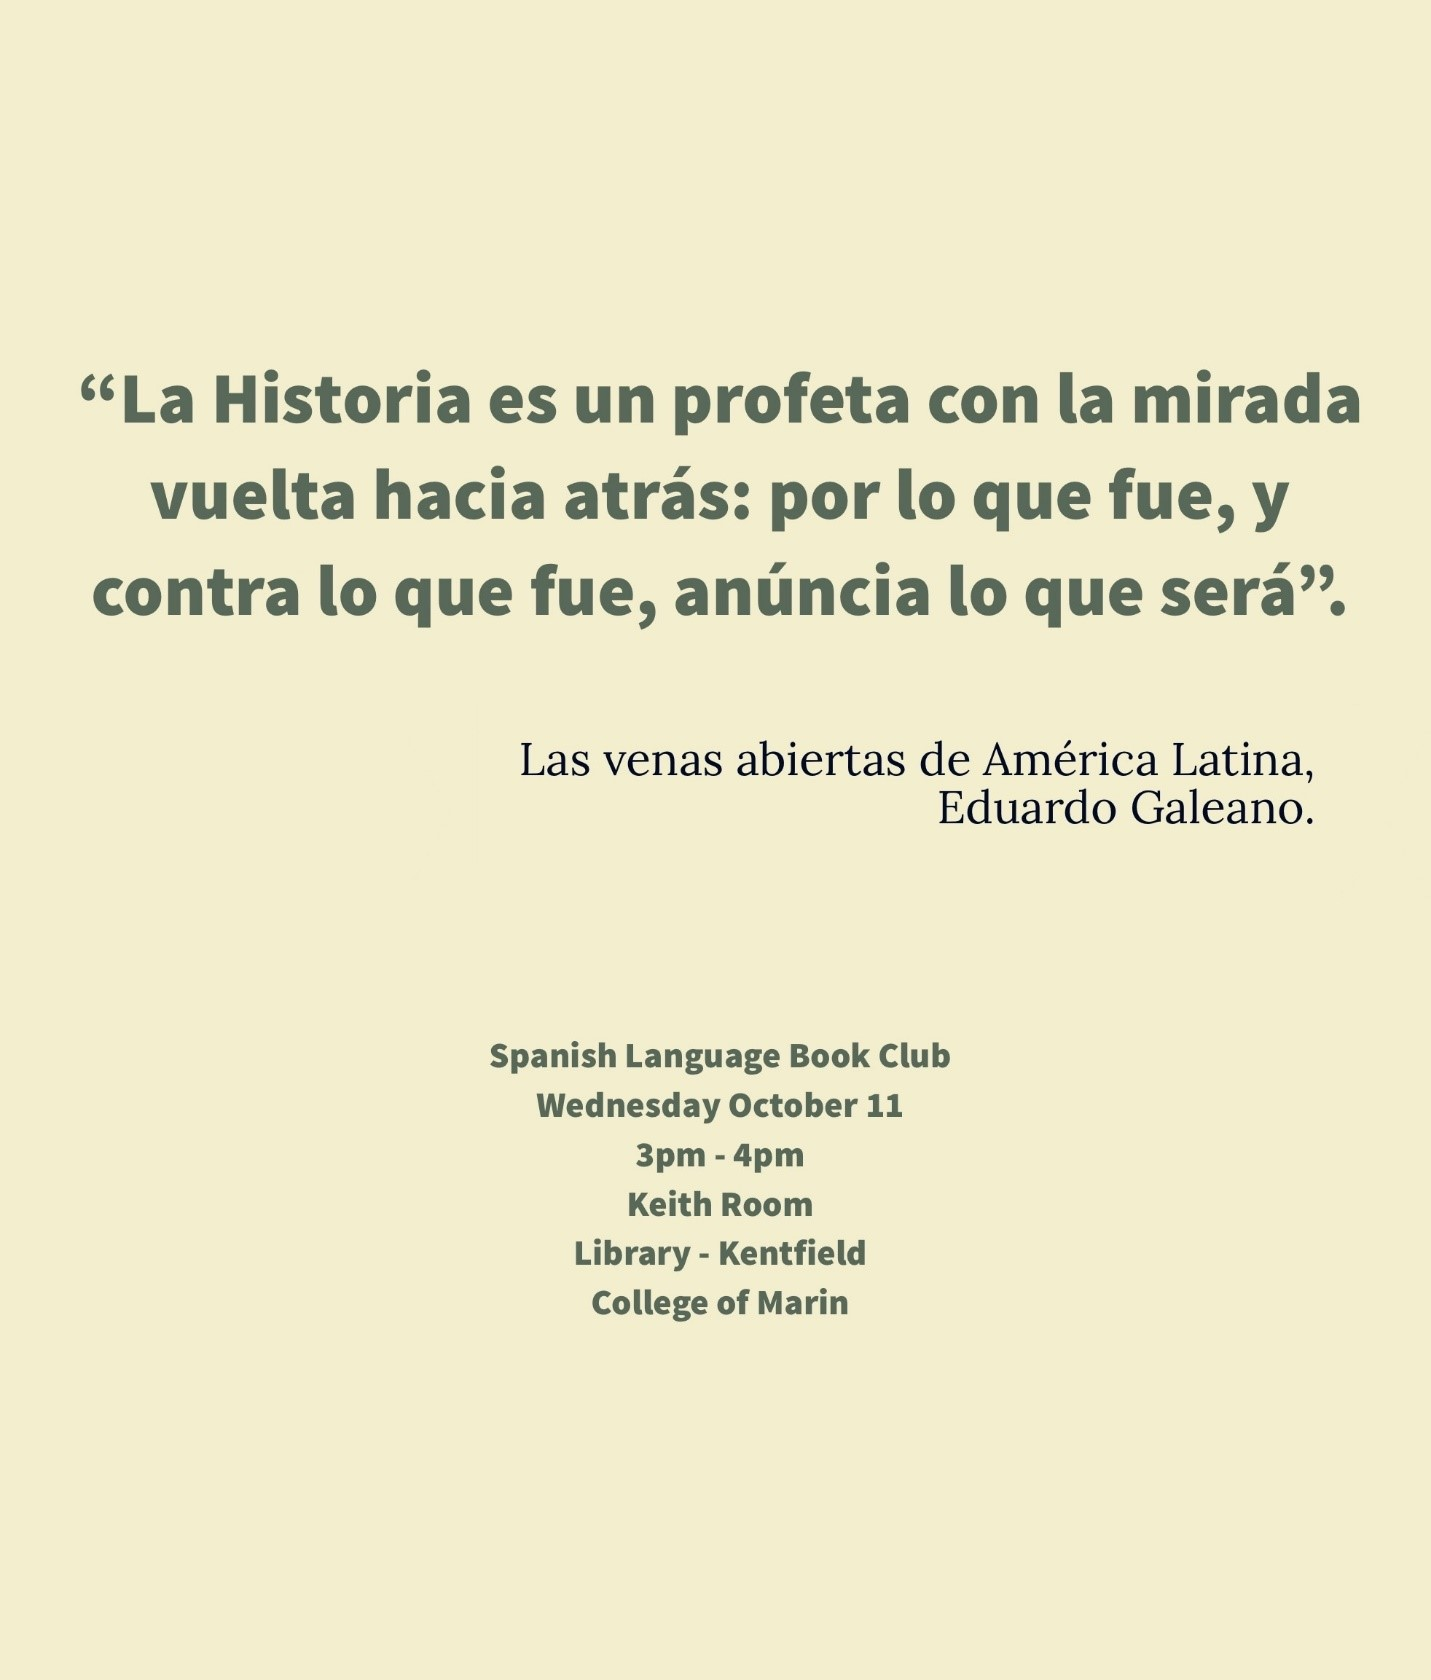 Spanish Language Book Club Details